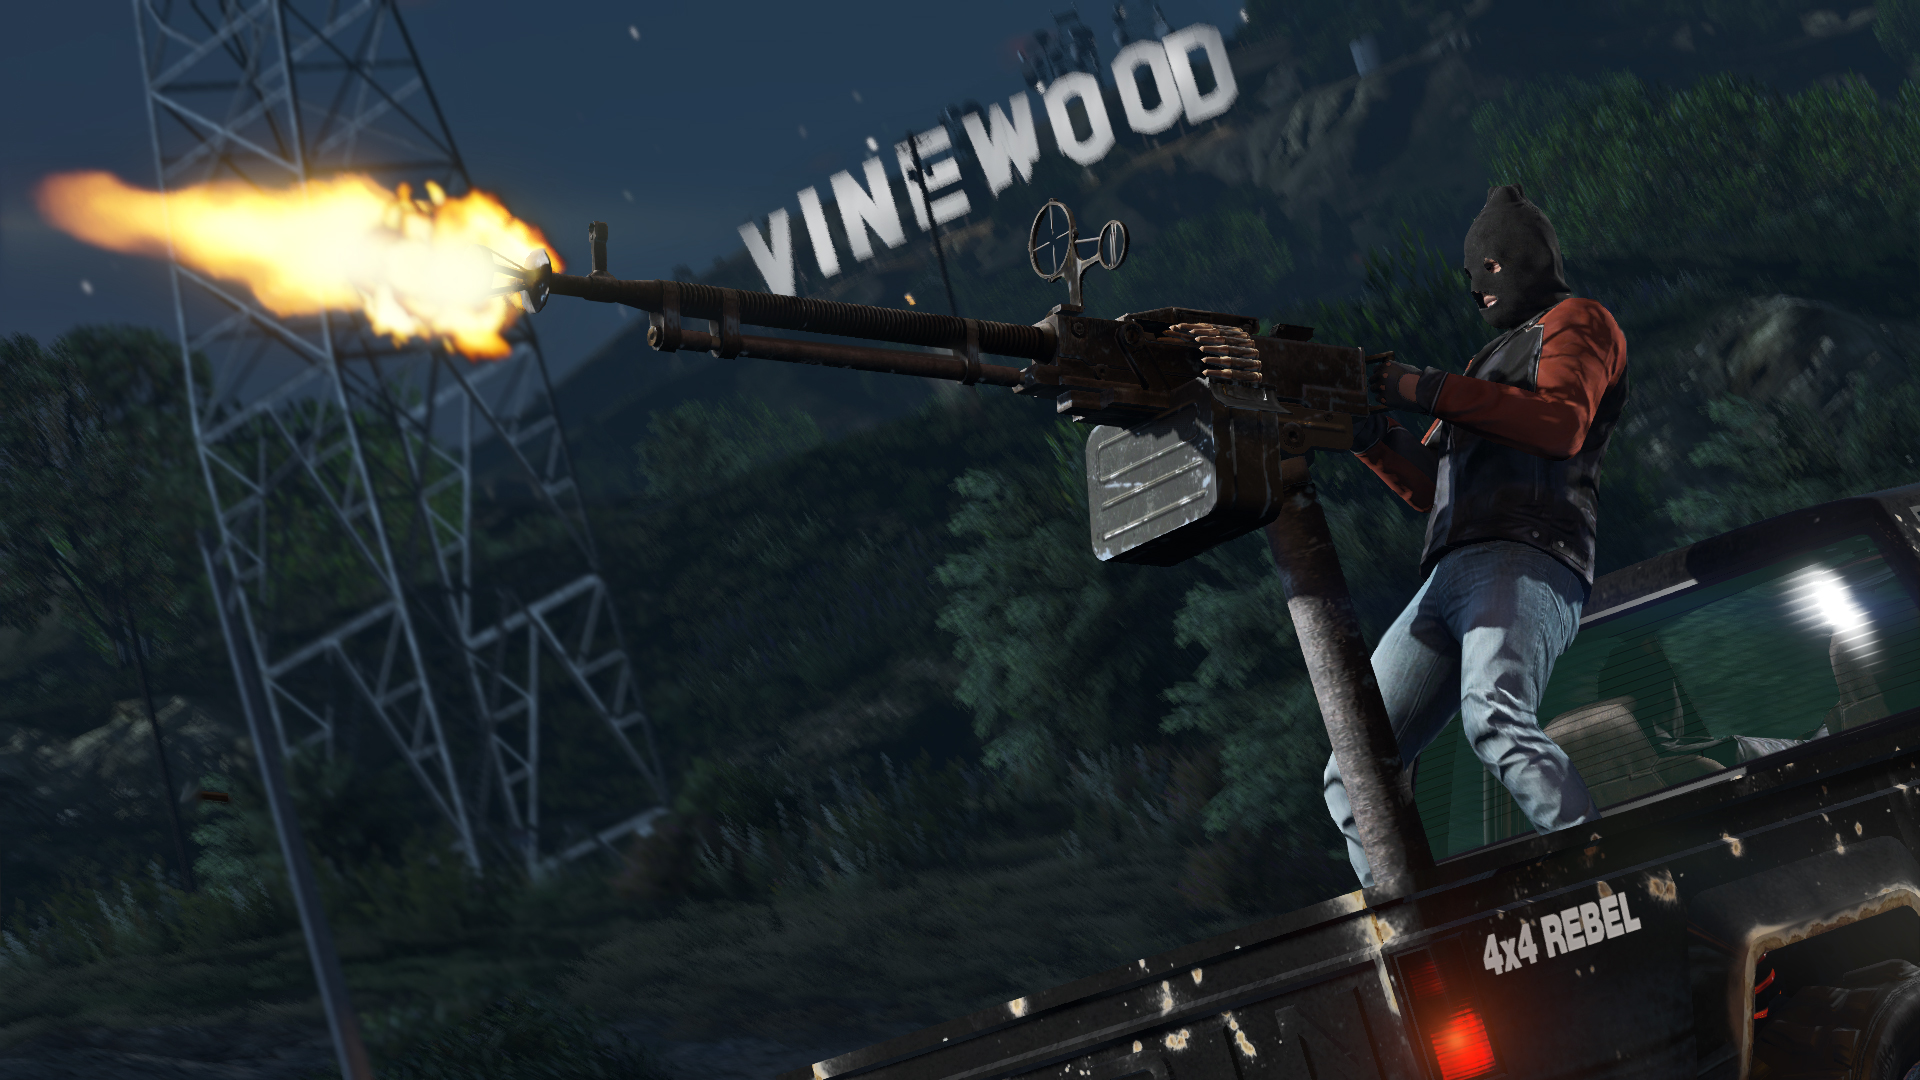 Grand Theft Auto V Images - iGrandTheftAuto